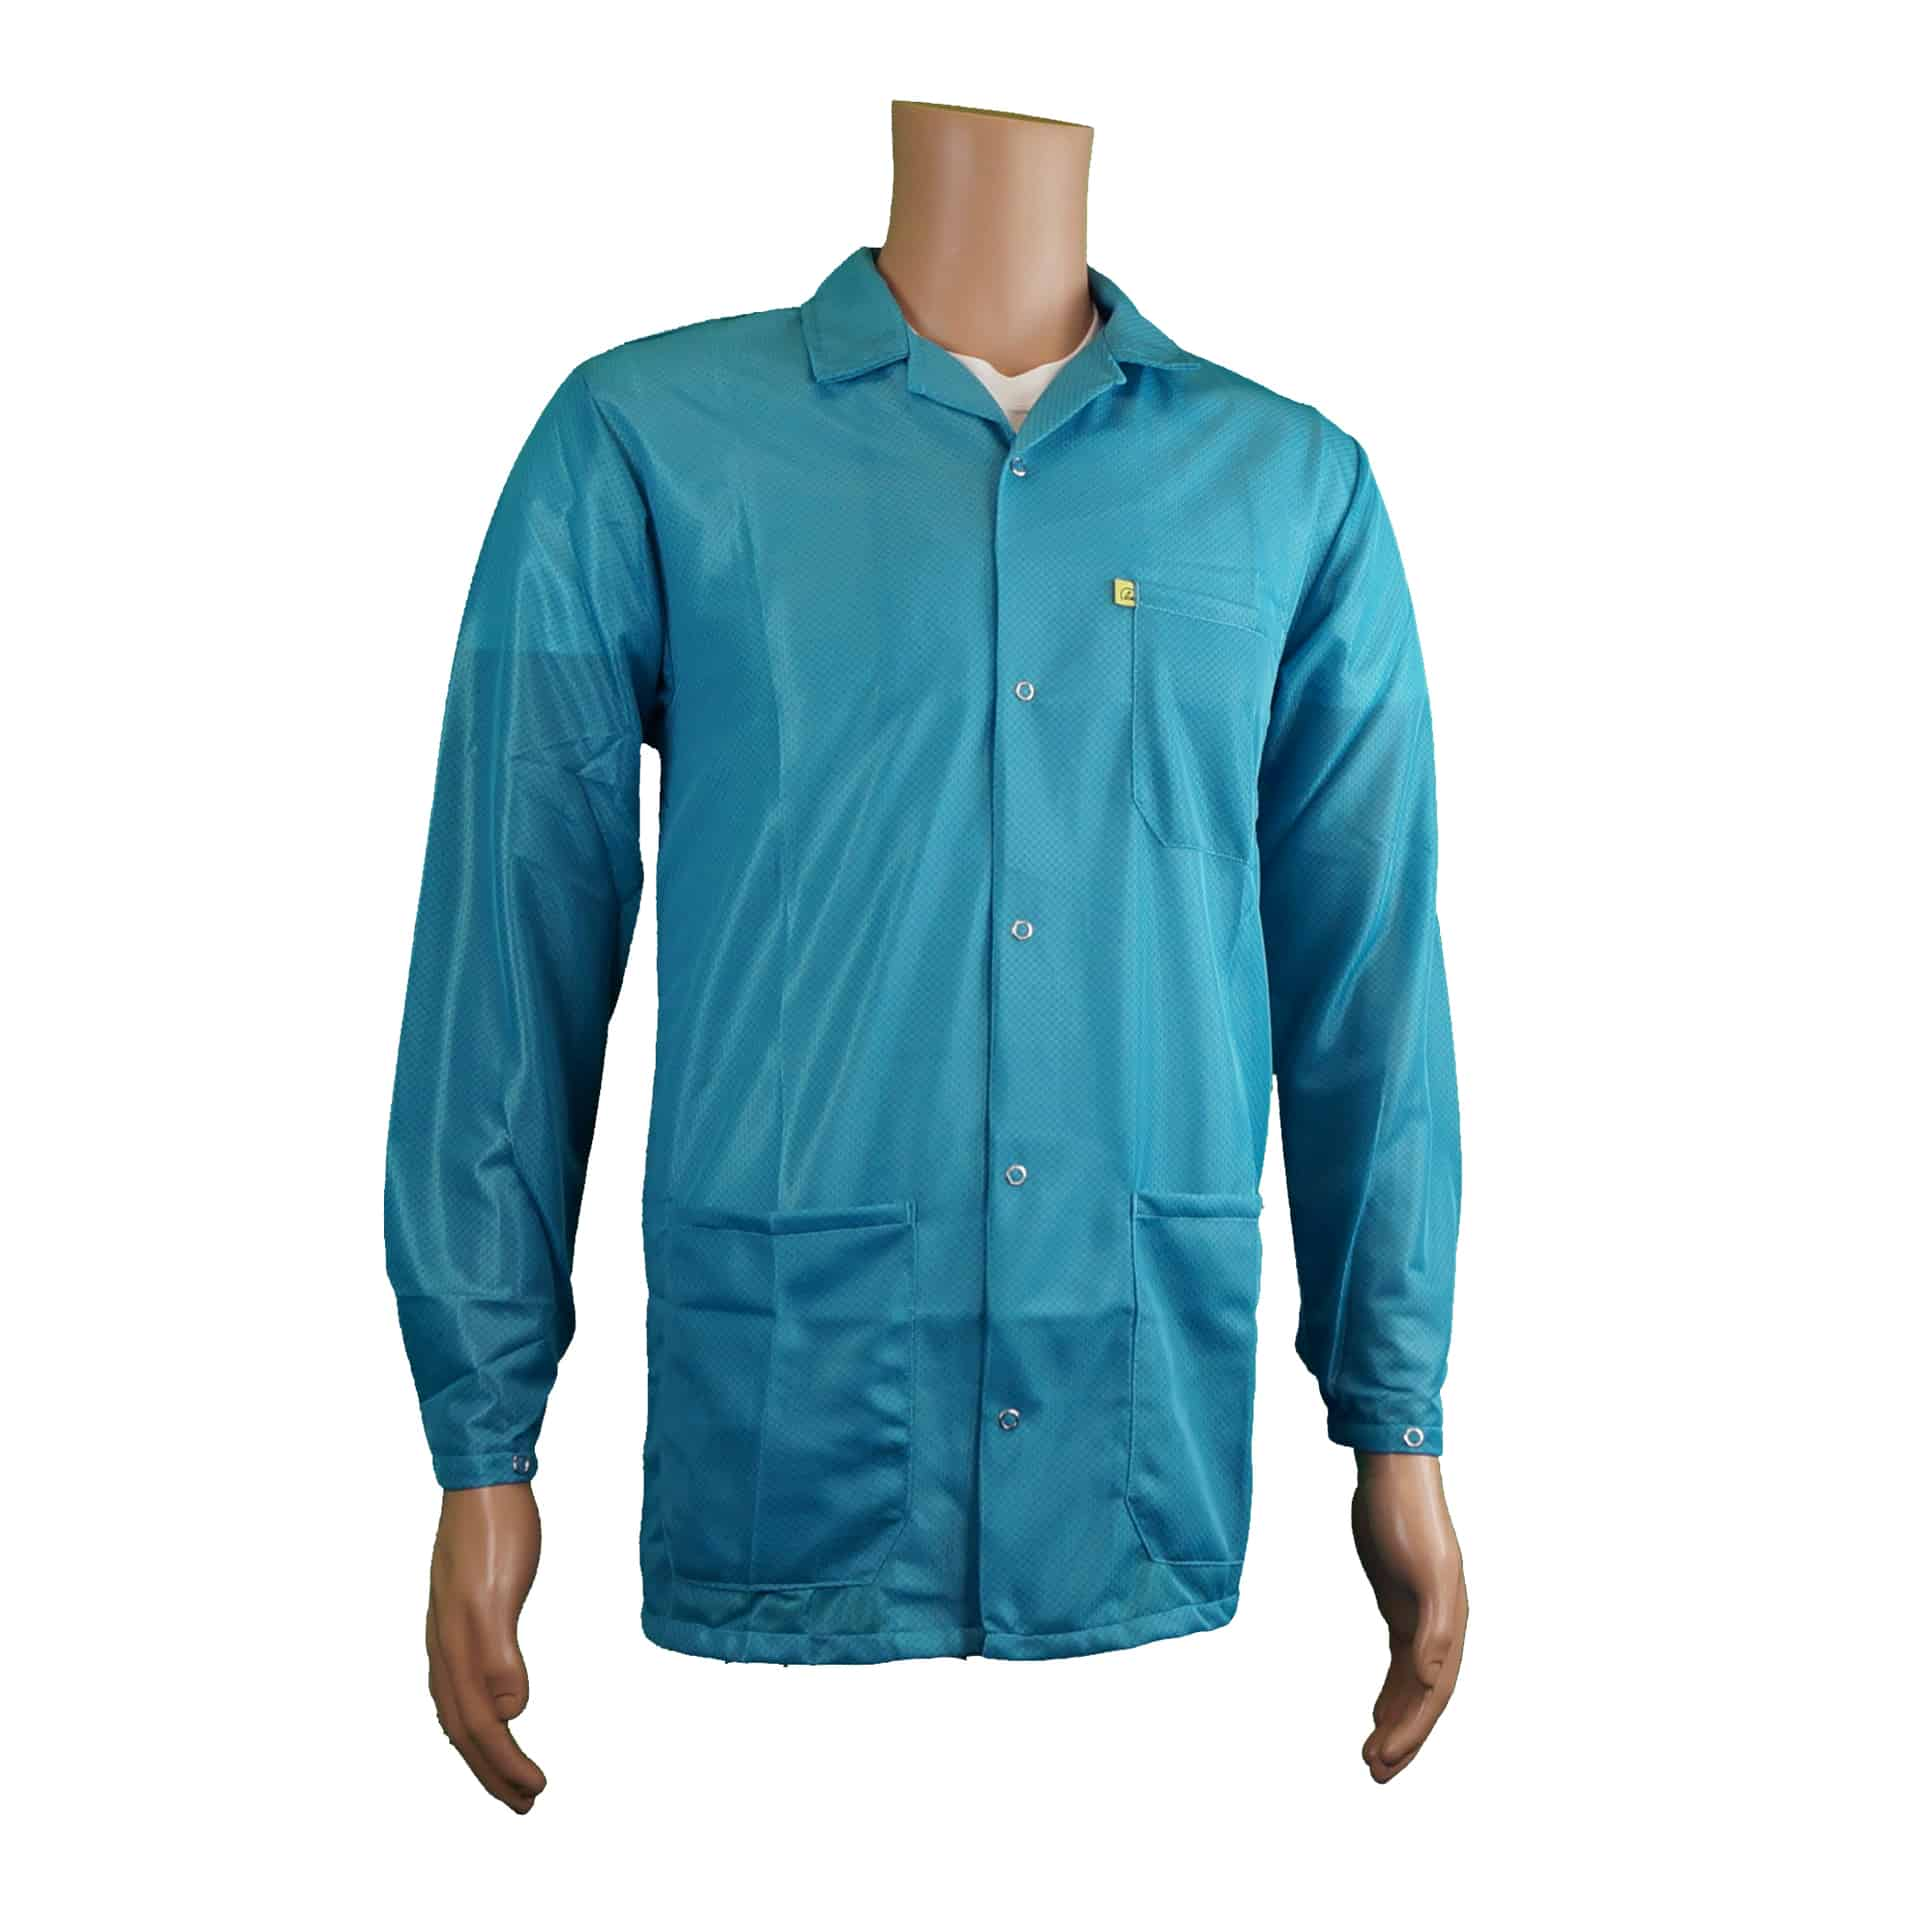 9010-esd-jacket-collar-snap-cuff-model-teal